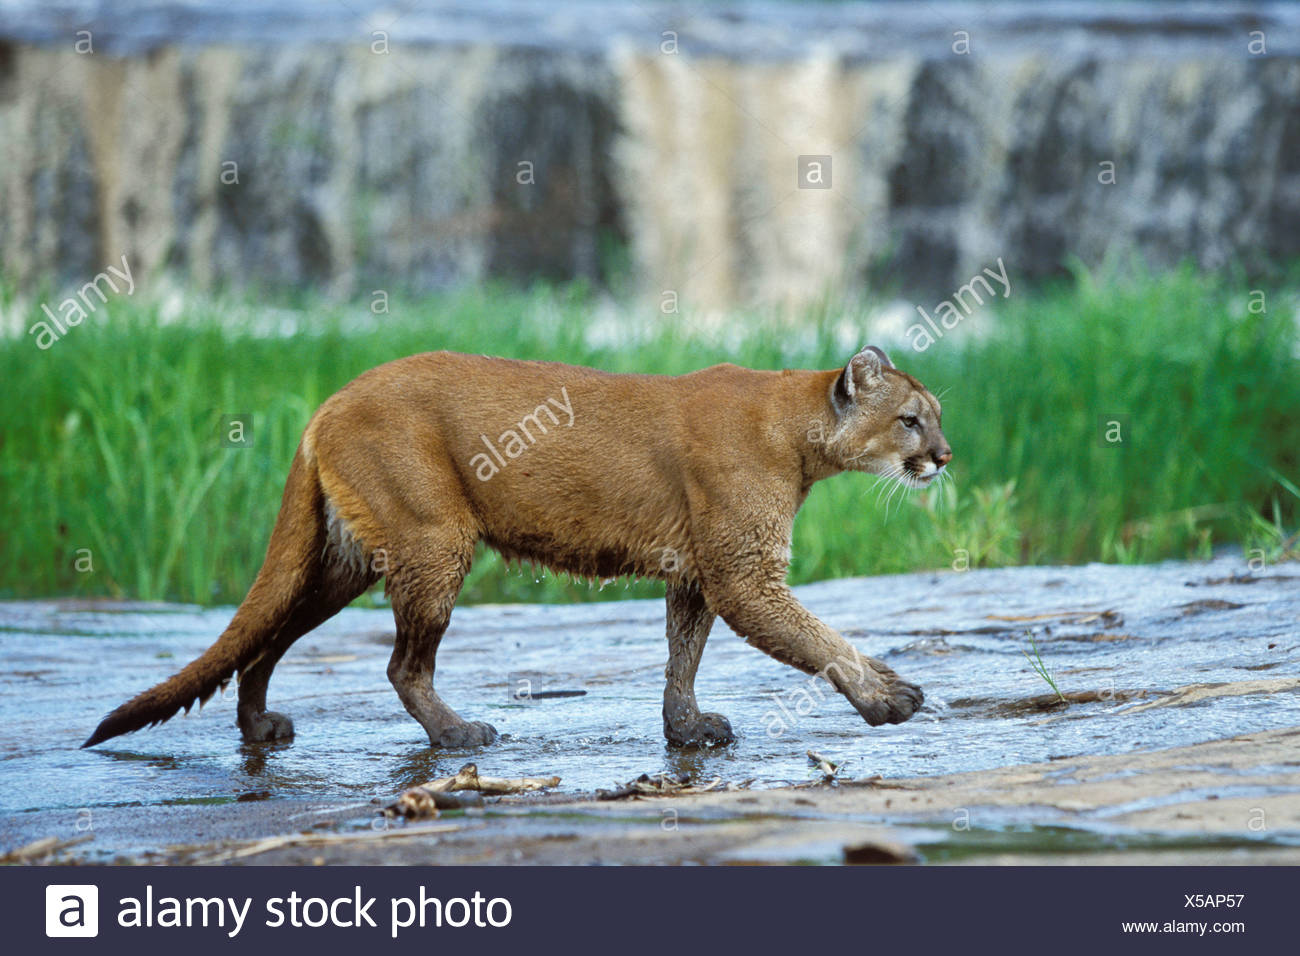 Cougar, Mountain Lion (Puma concolor) at waterfall, Rocky Mountains, Colorado, North America - Stock Image